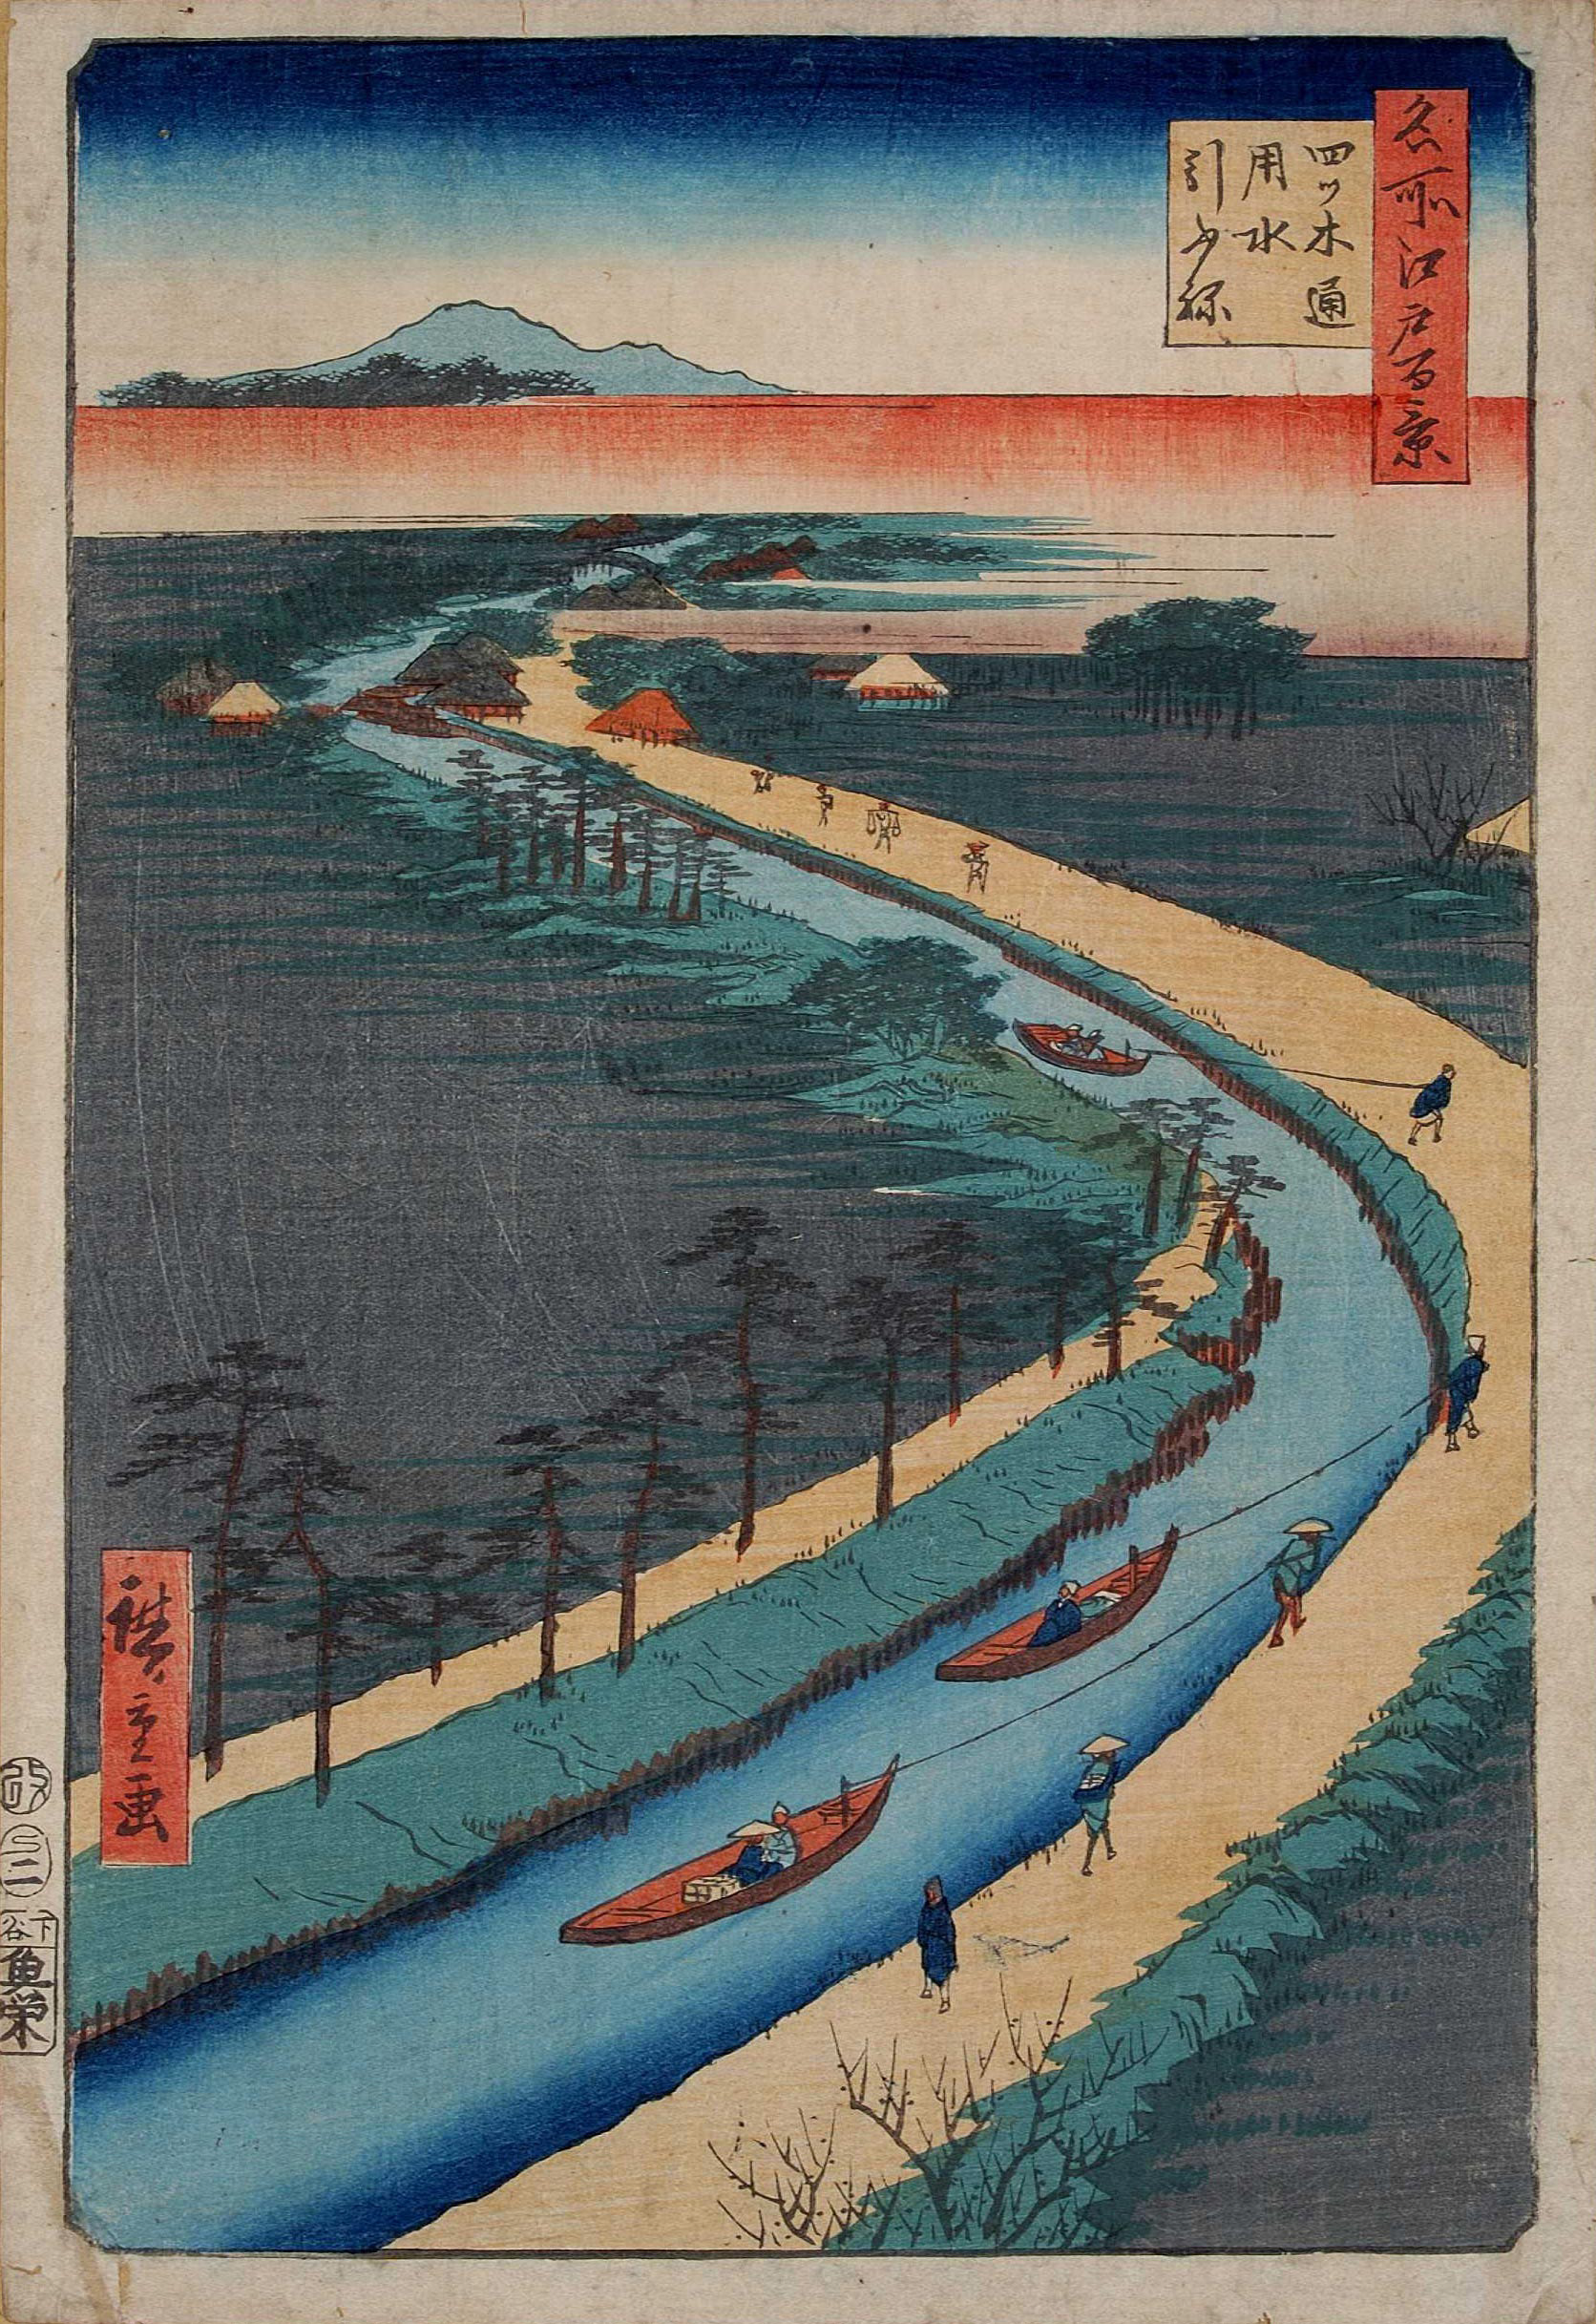 File:100 views edo 033.jpg